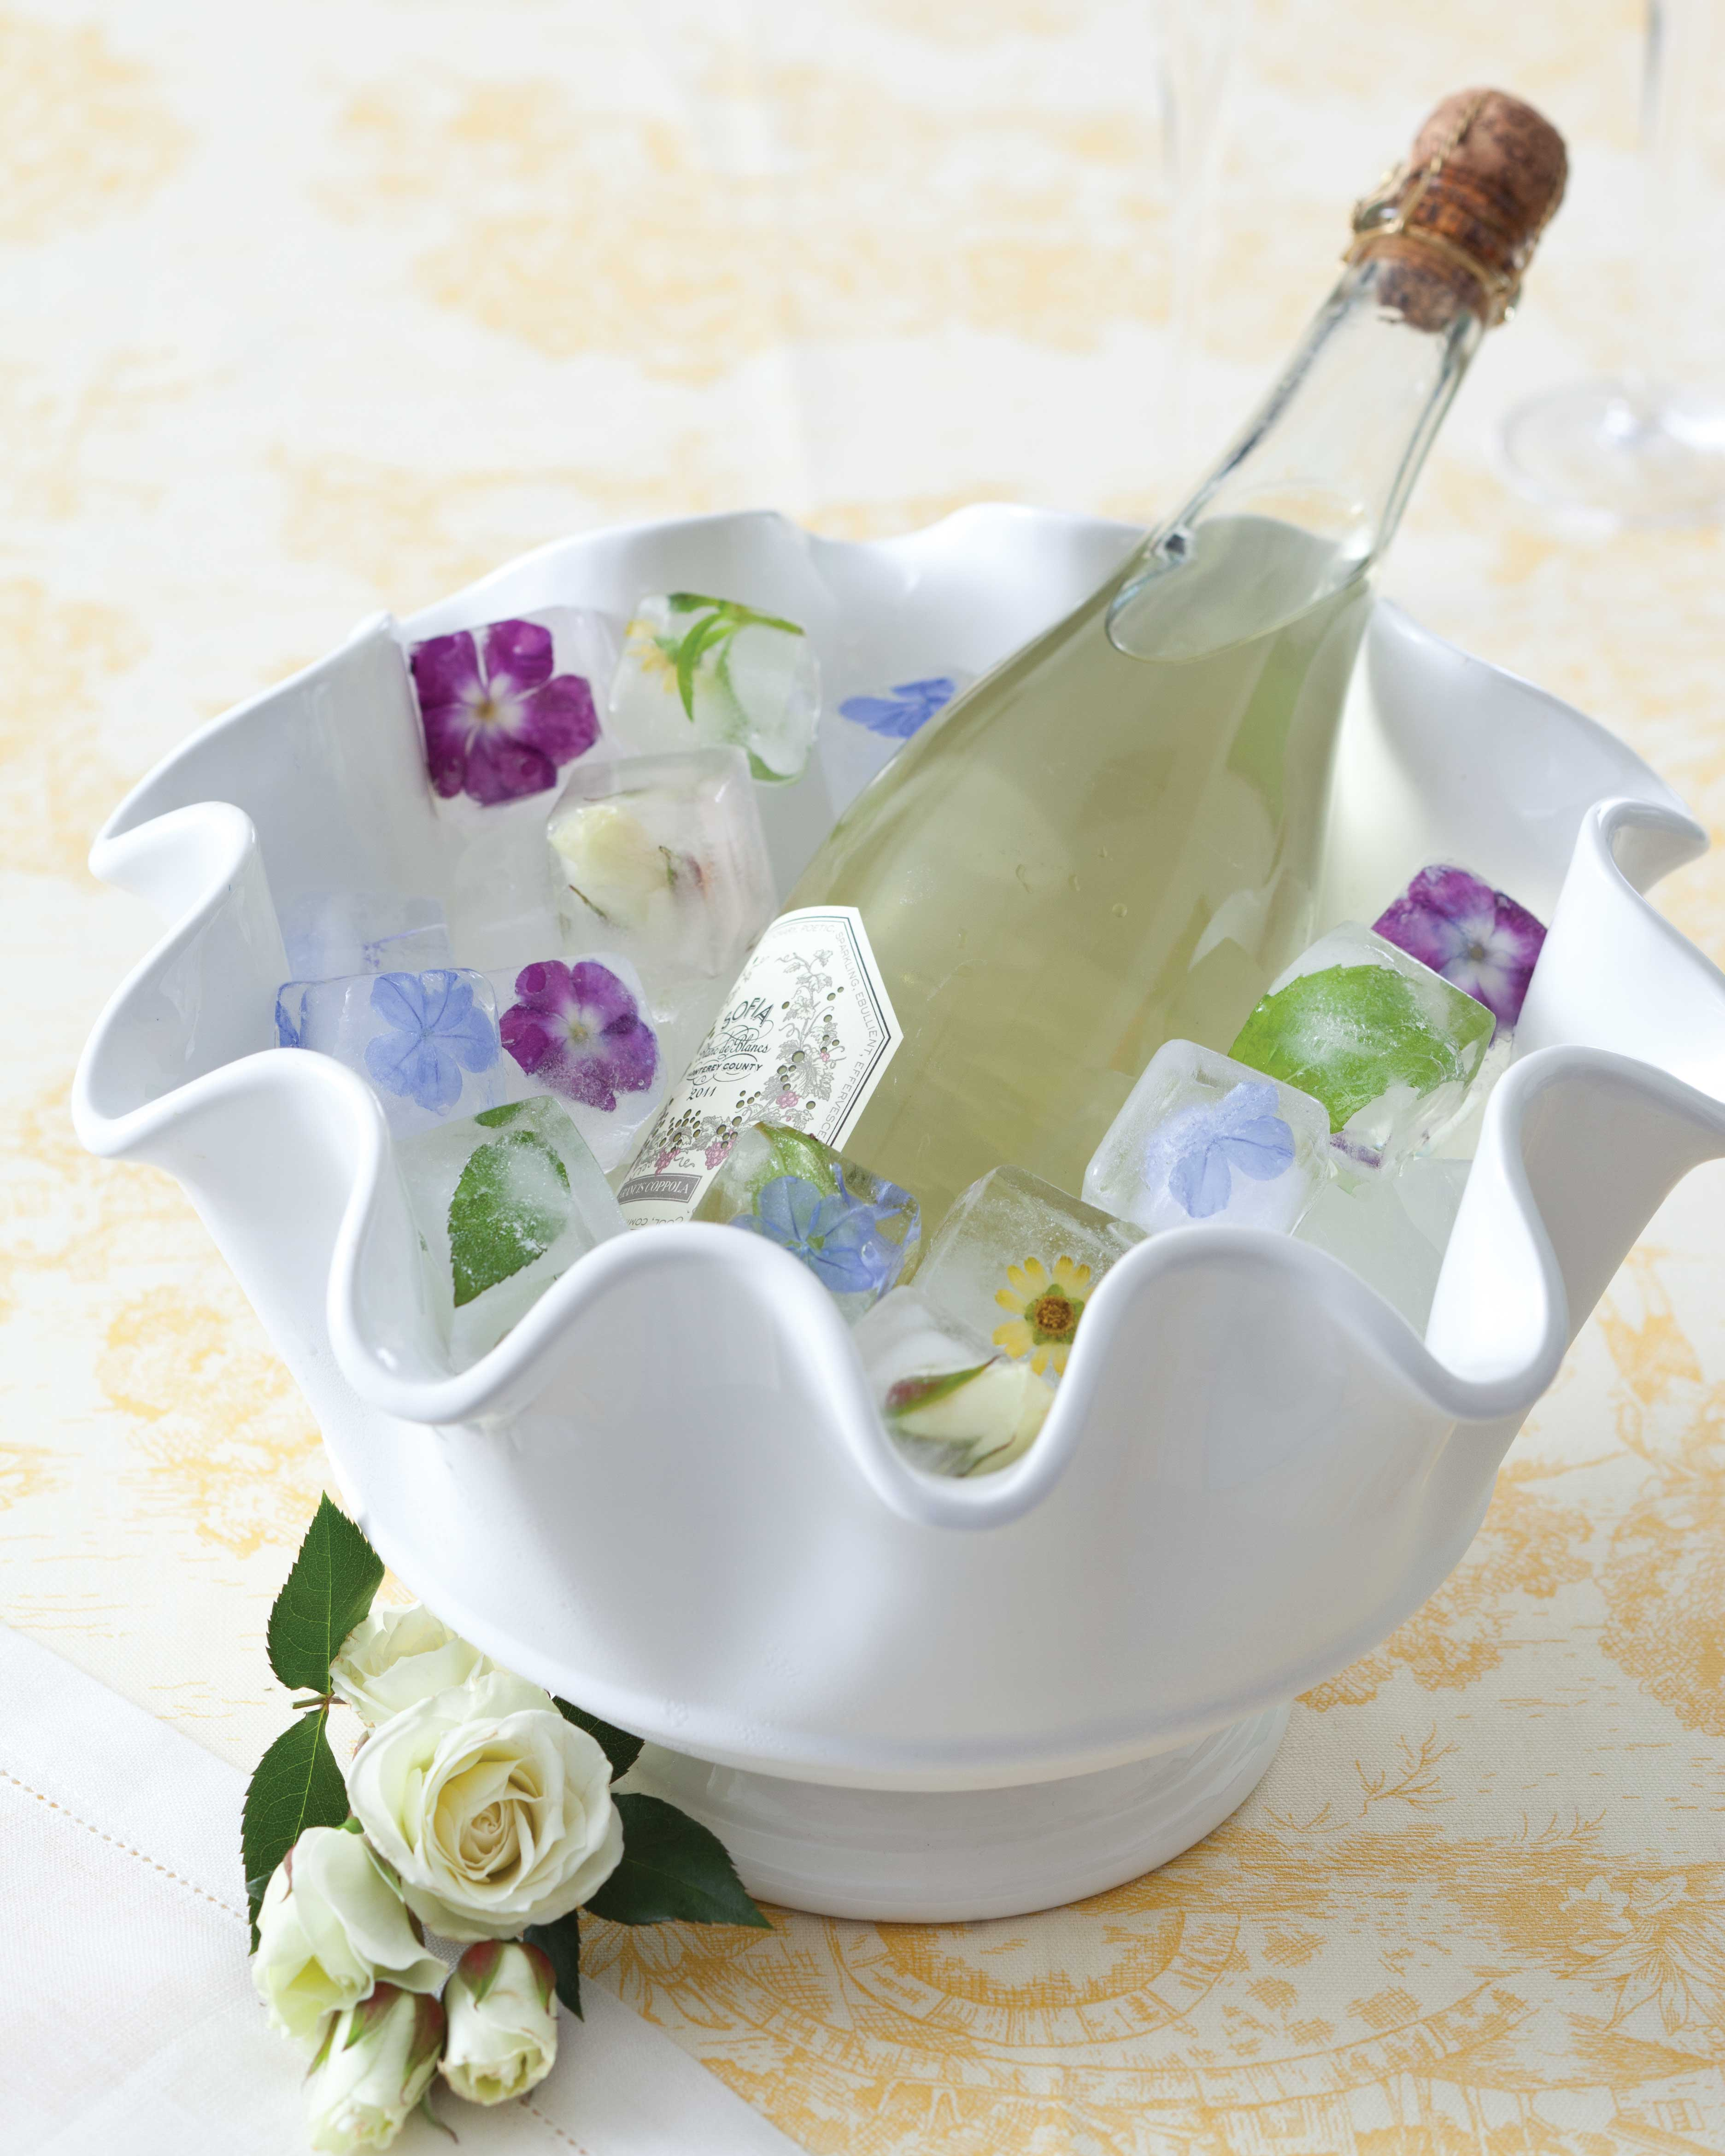 Spring entertaining ideas, ice cubes